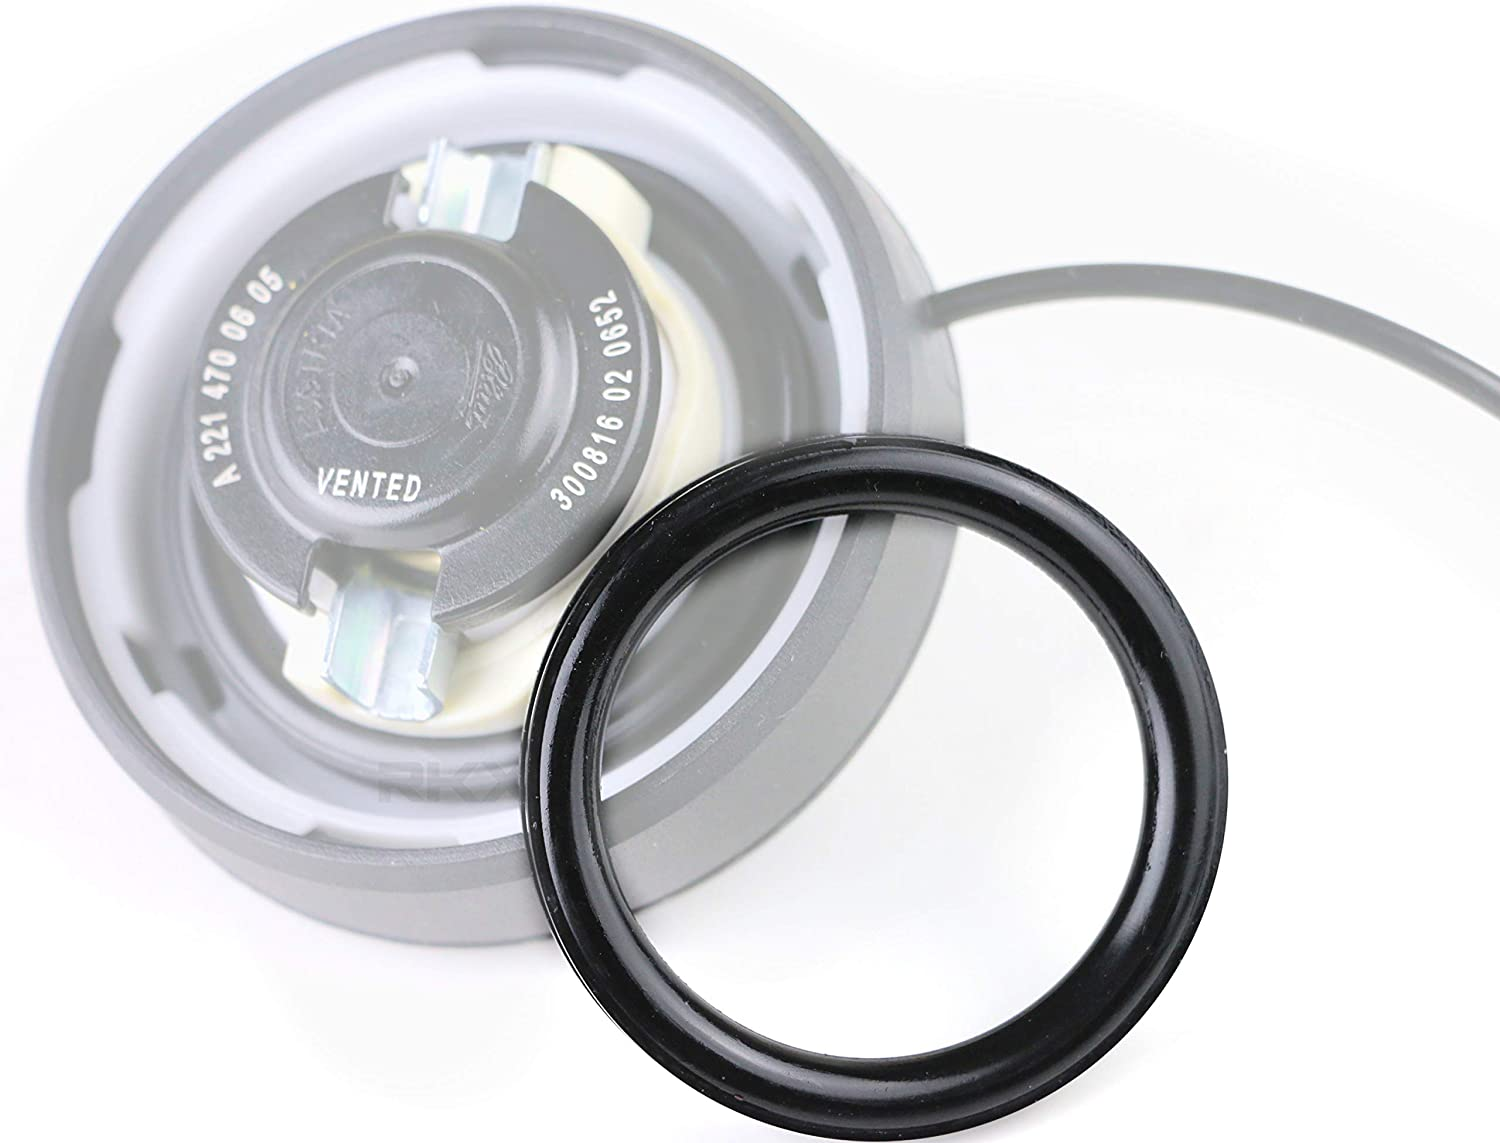 GENUINE Fuel Tank Gas Cap with Tether for Mercedes Benz